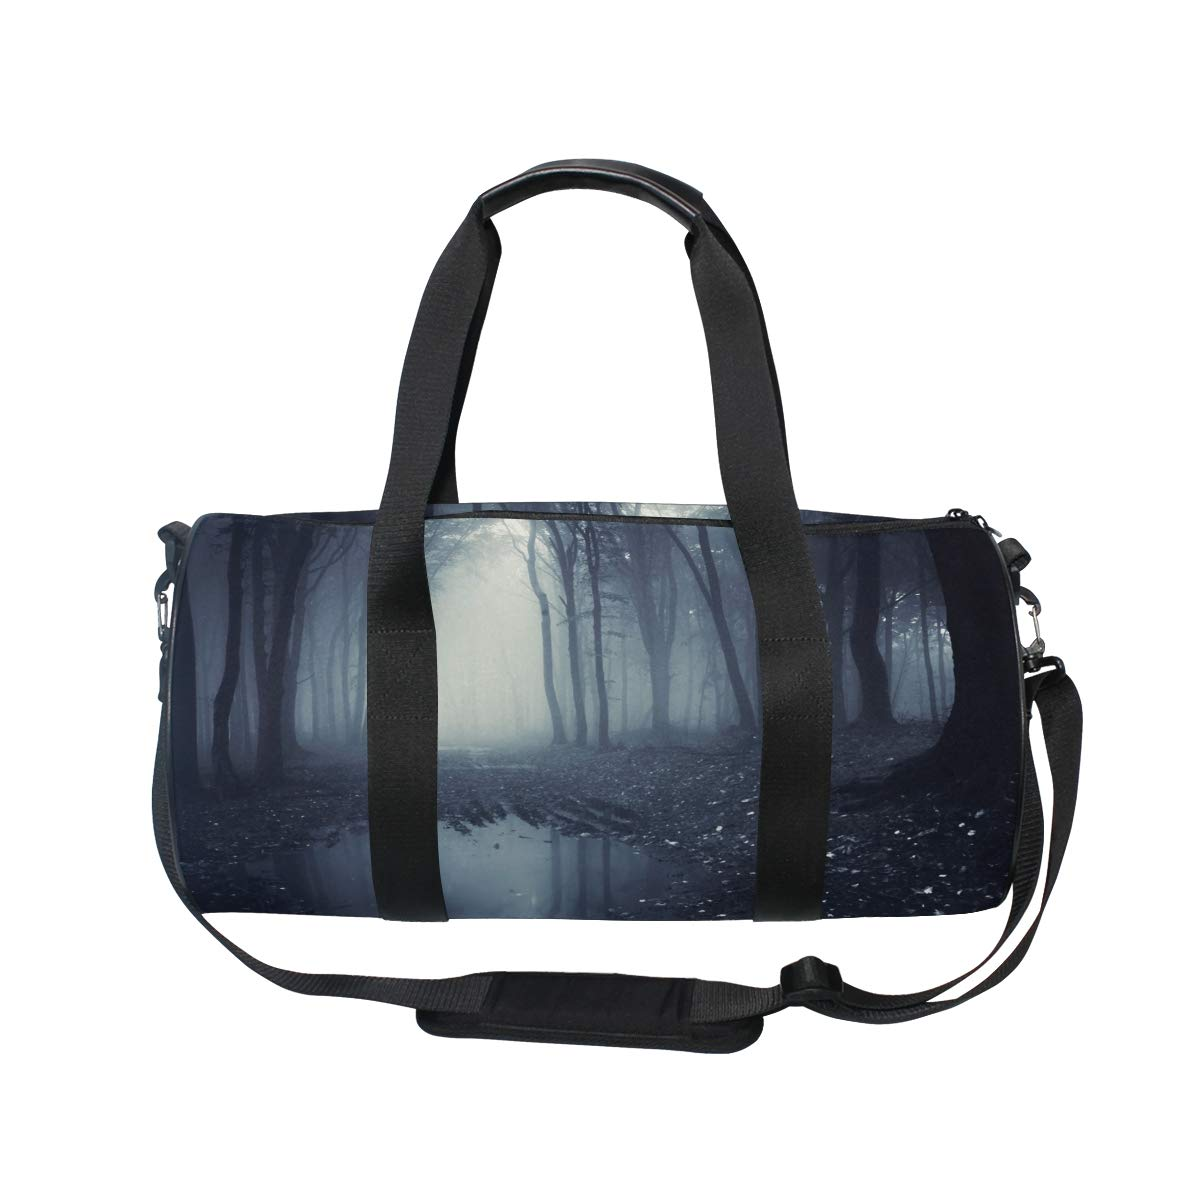 Sports Gym Bag Travel Duffel Bag with Pockets Luggage & Travel Gear Shoulder Strap Fitness Bag by EVERUI (Image #2)